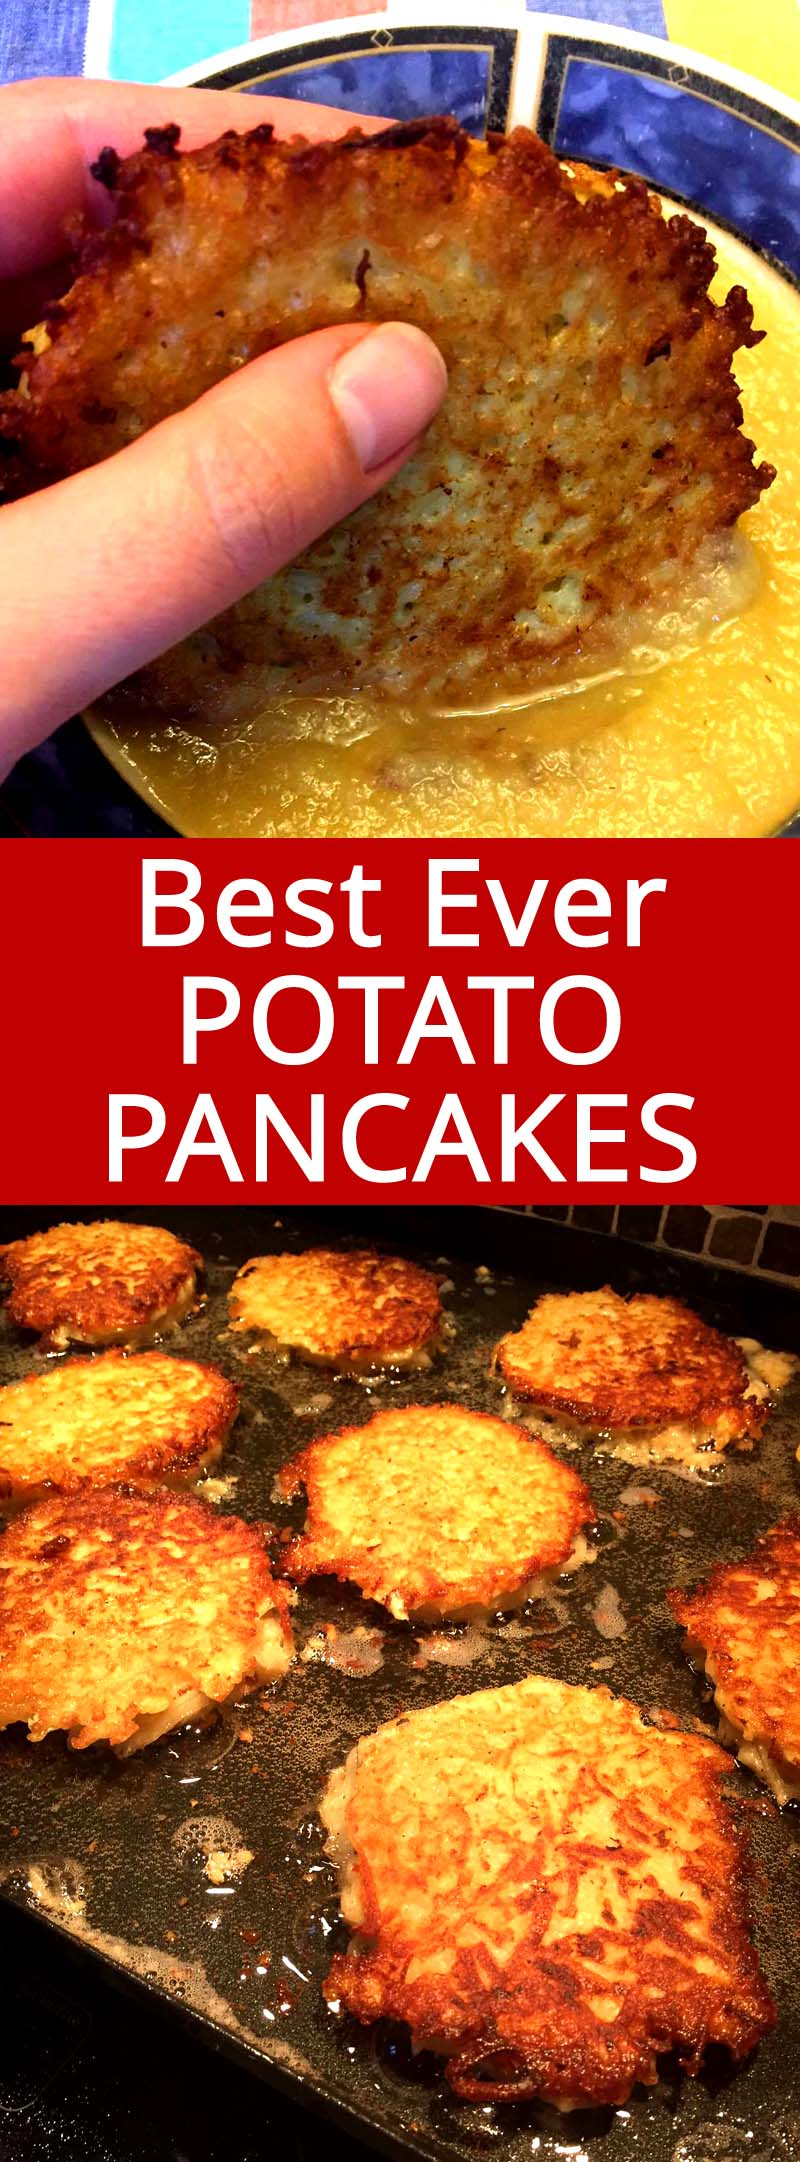 These homemade potato pancakes are amazing! So crispy and addictive, I can eat the whole batch at once! This recipe makes authentic Jewish latkes potato pancakes - best ever!